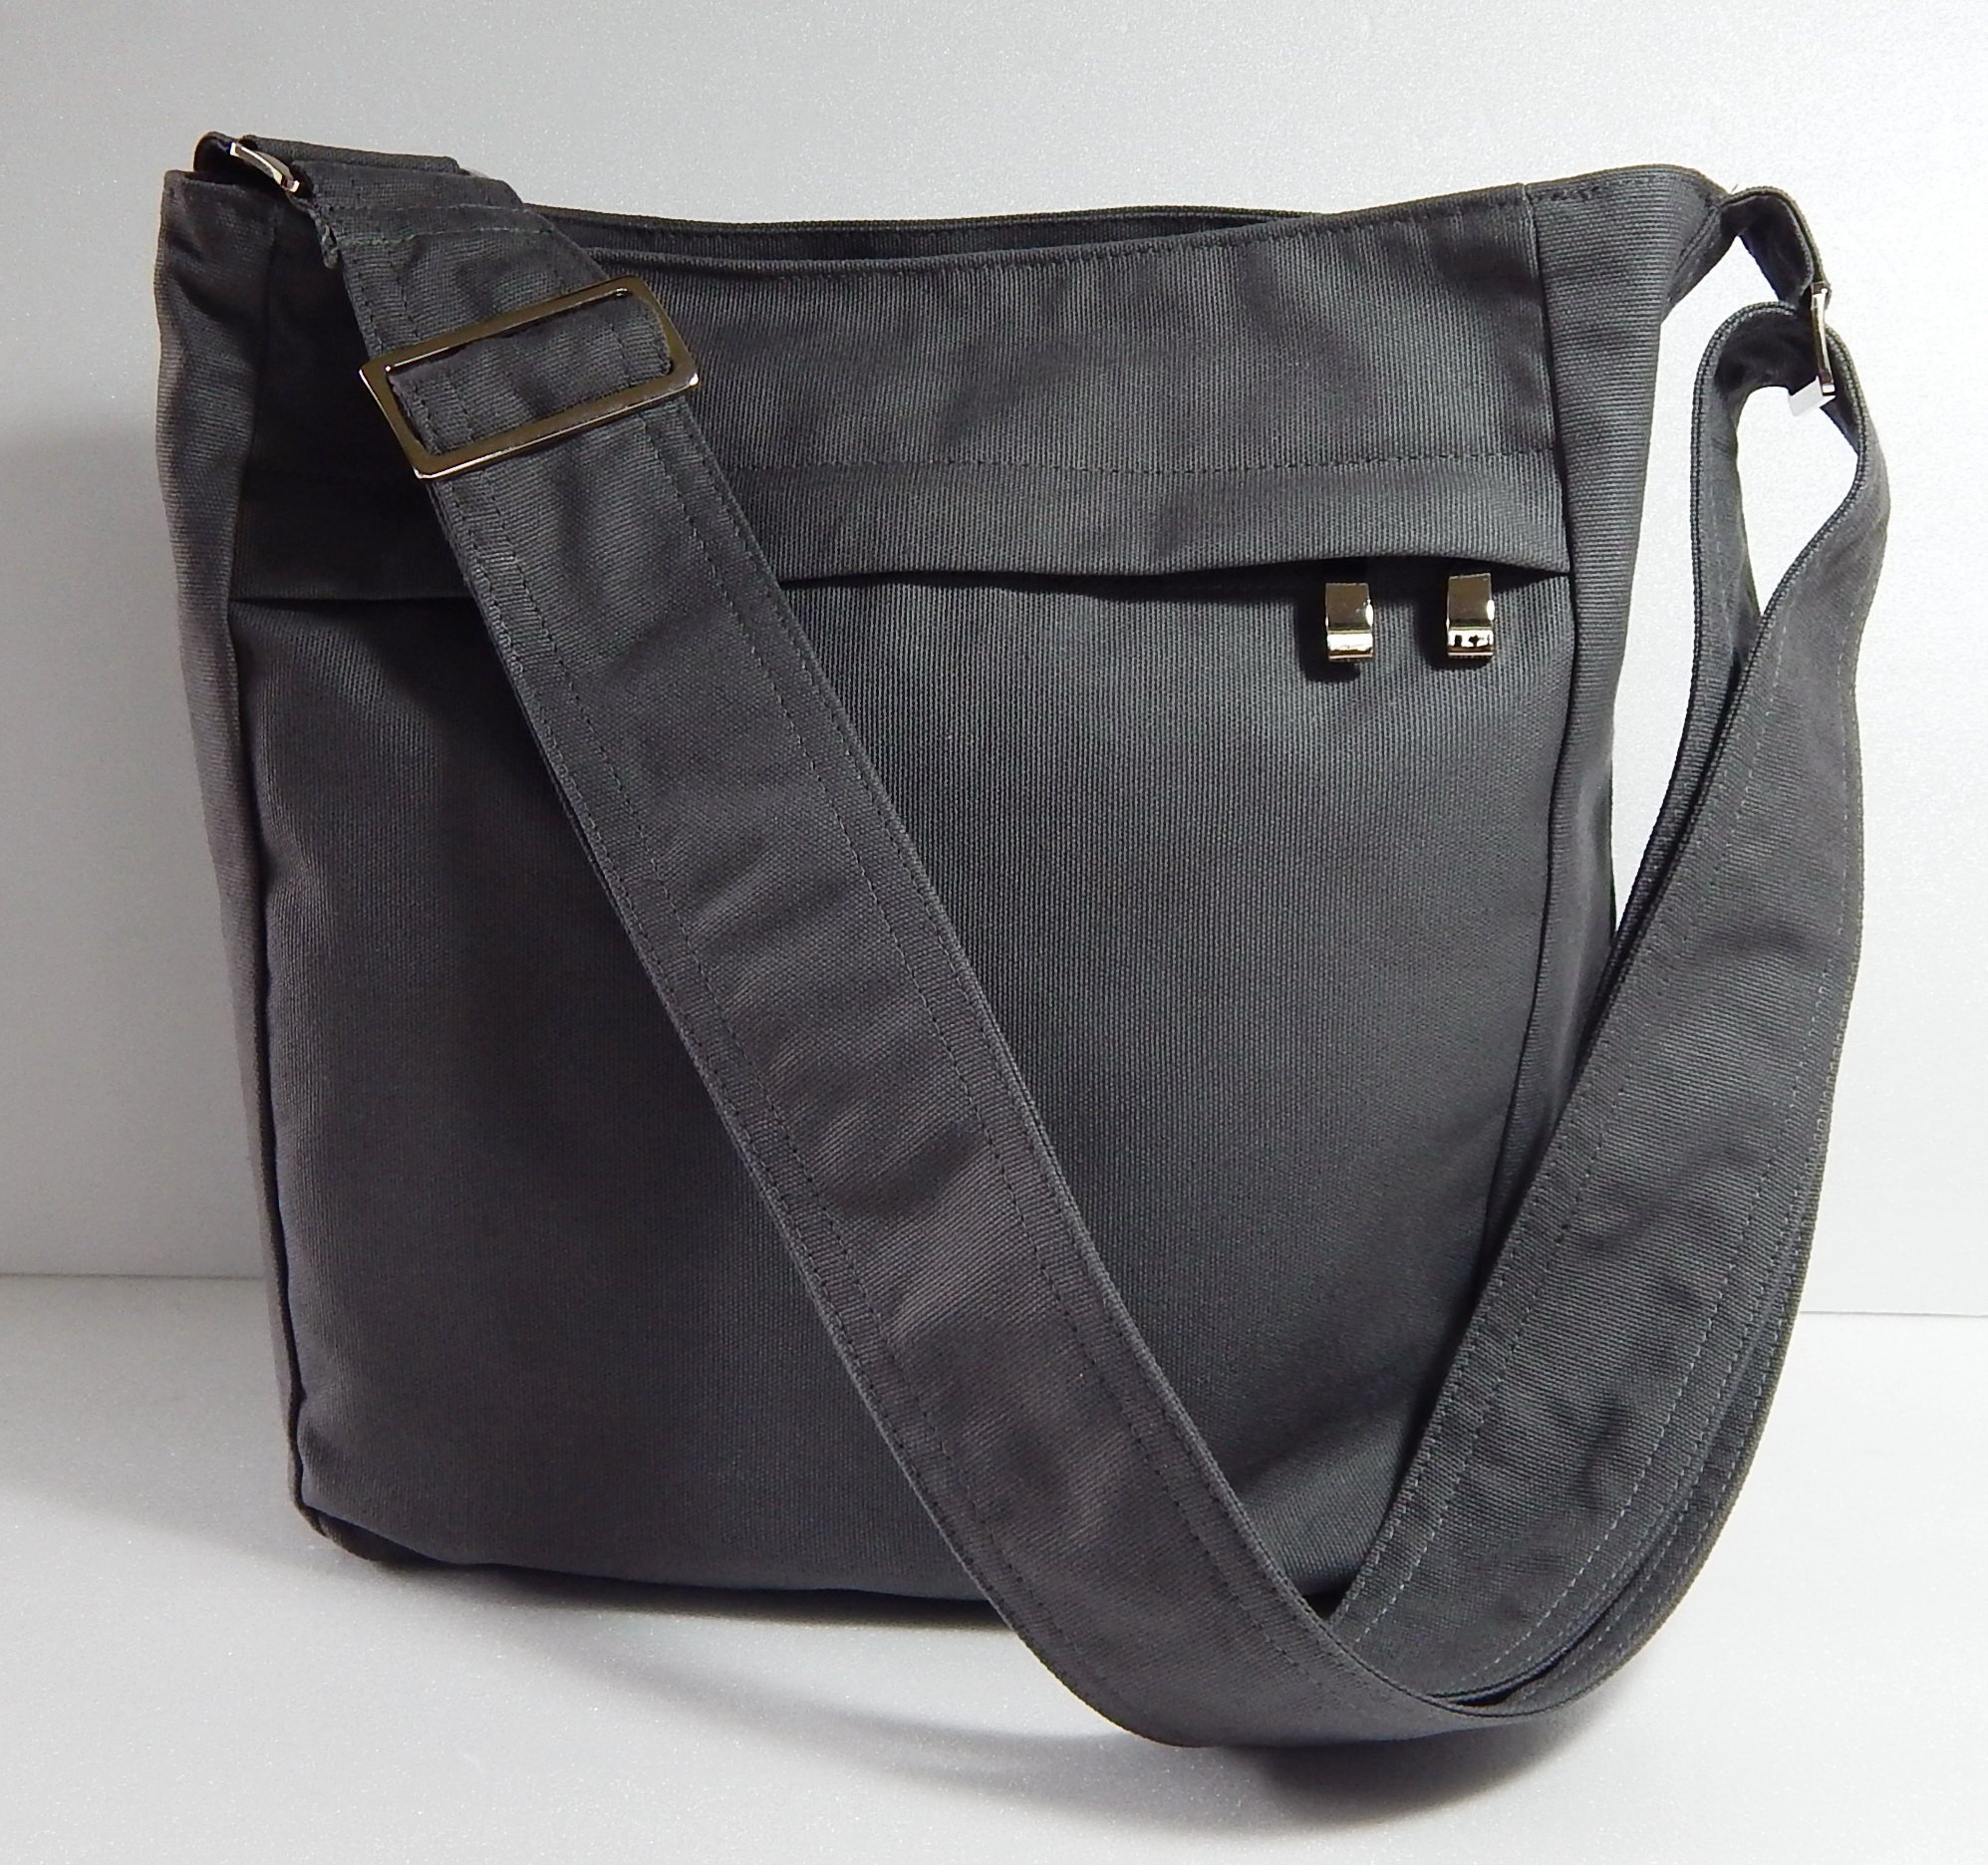 Virine grey cross body bag, messenger bag, everyday bag, shoulder bag, handbag, travel bag, women - KATE